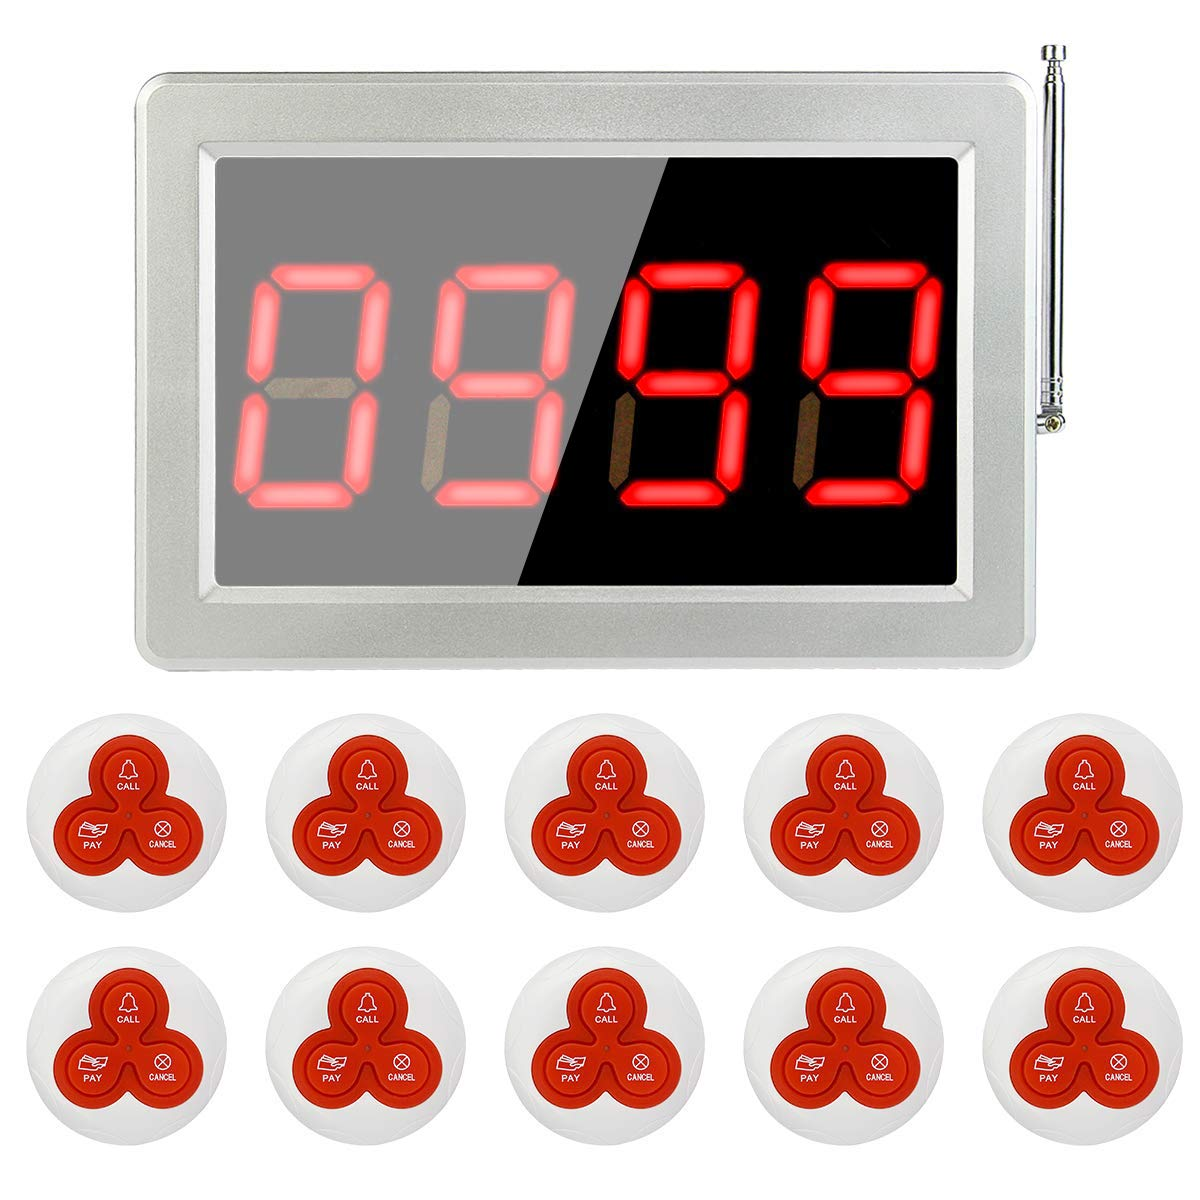 Retekess Wireless Calling System Restaurant Pager System Pager System with 10 Call Buttons and 1 Display Screen Receiver for Restaurant by Retekess